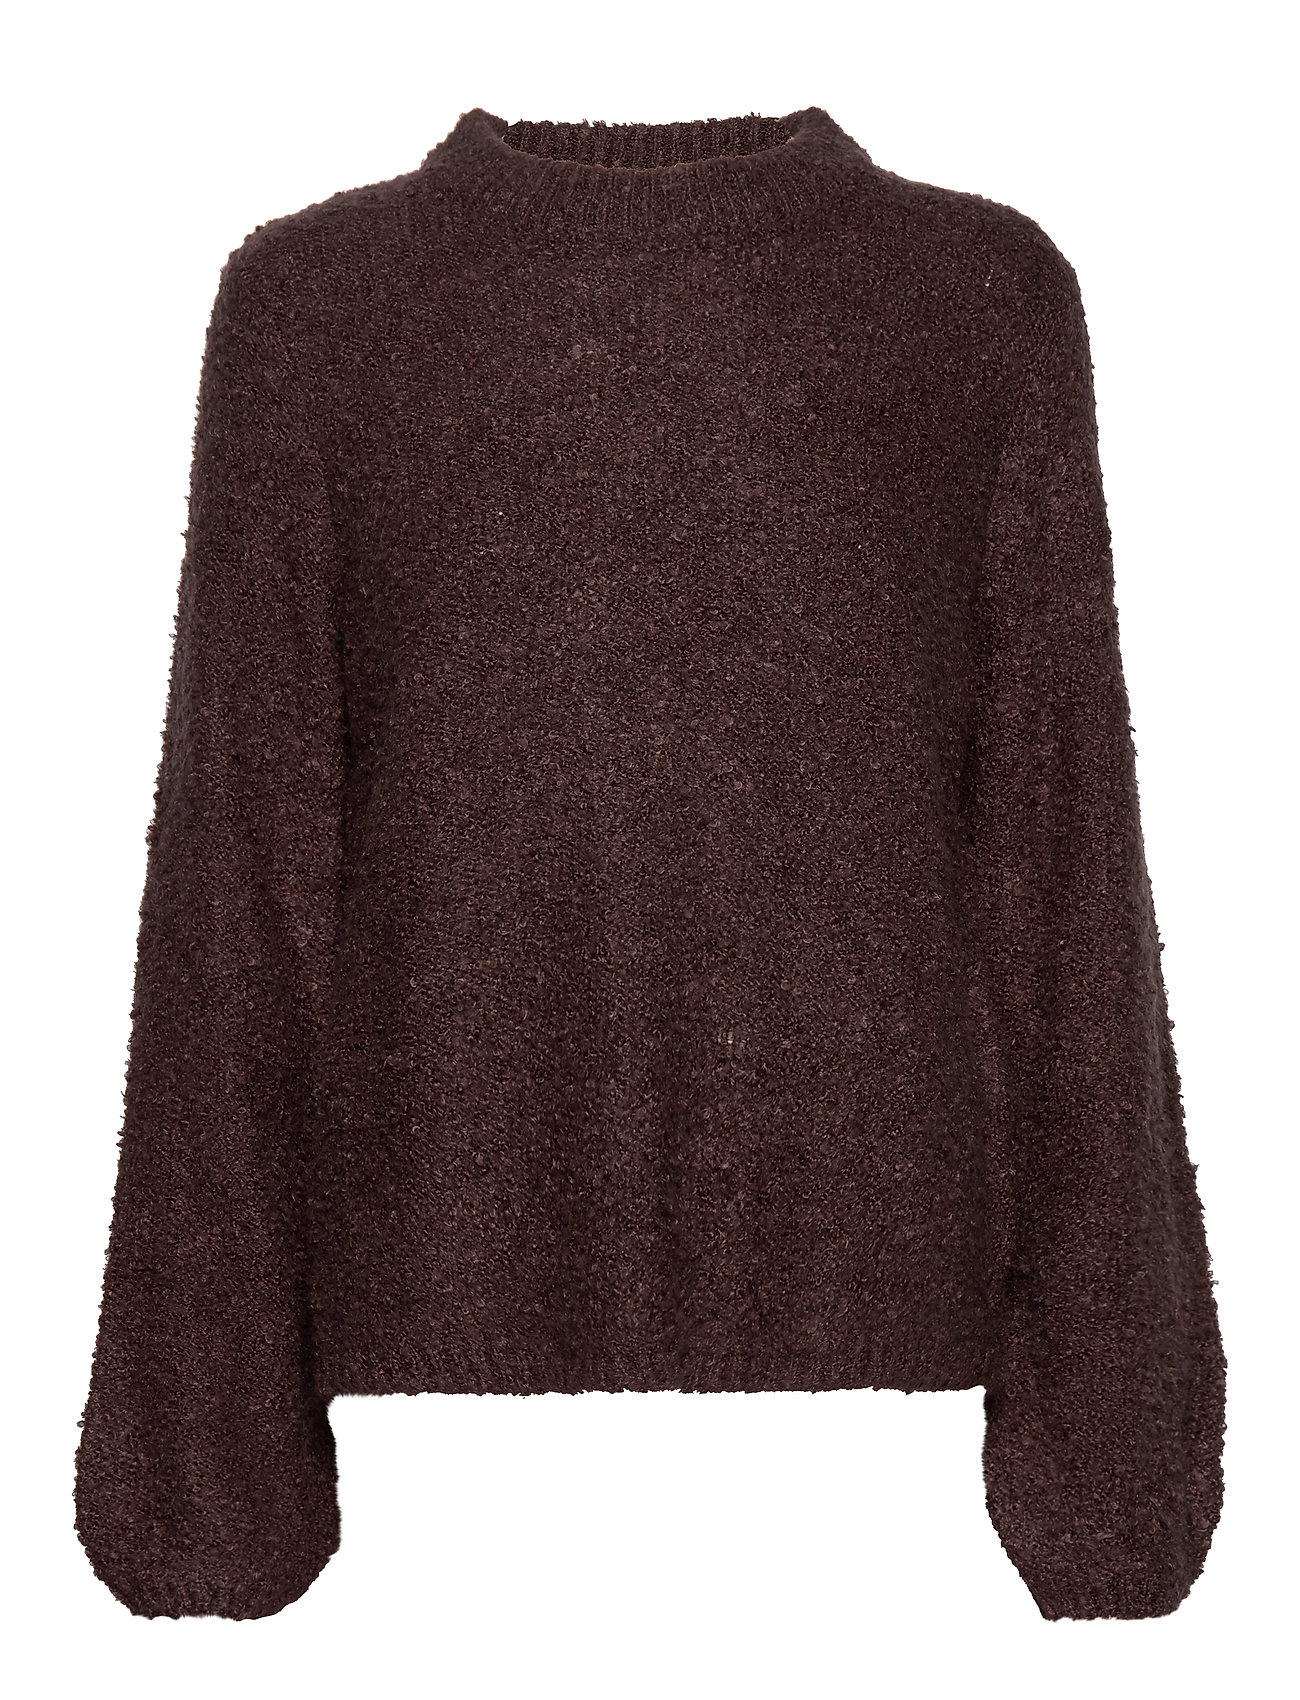 Vila VIBOSSA KNIT L/S FUNNEL NECK TOP TB KI - PUCE